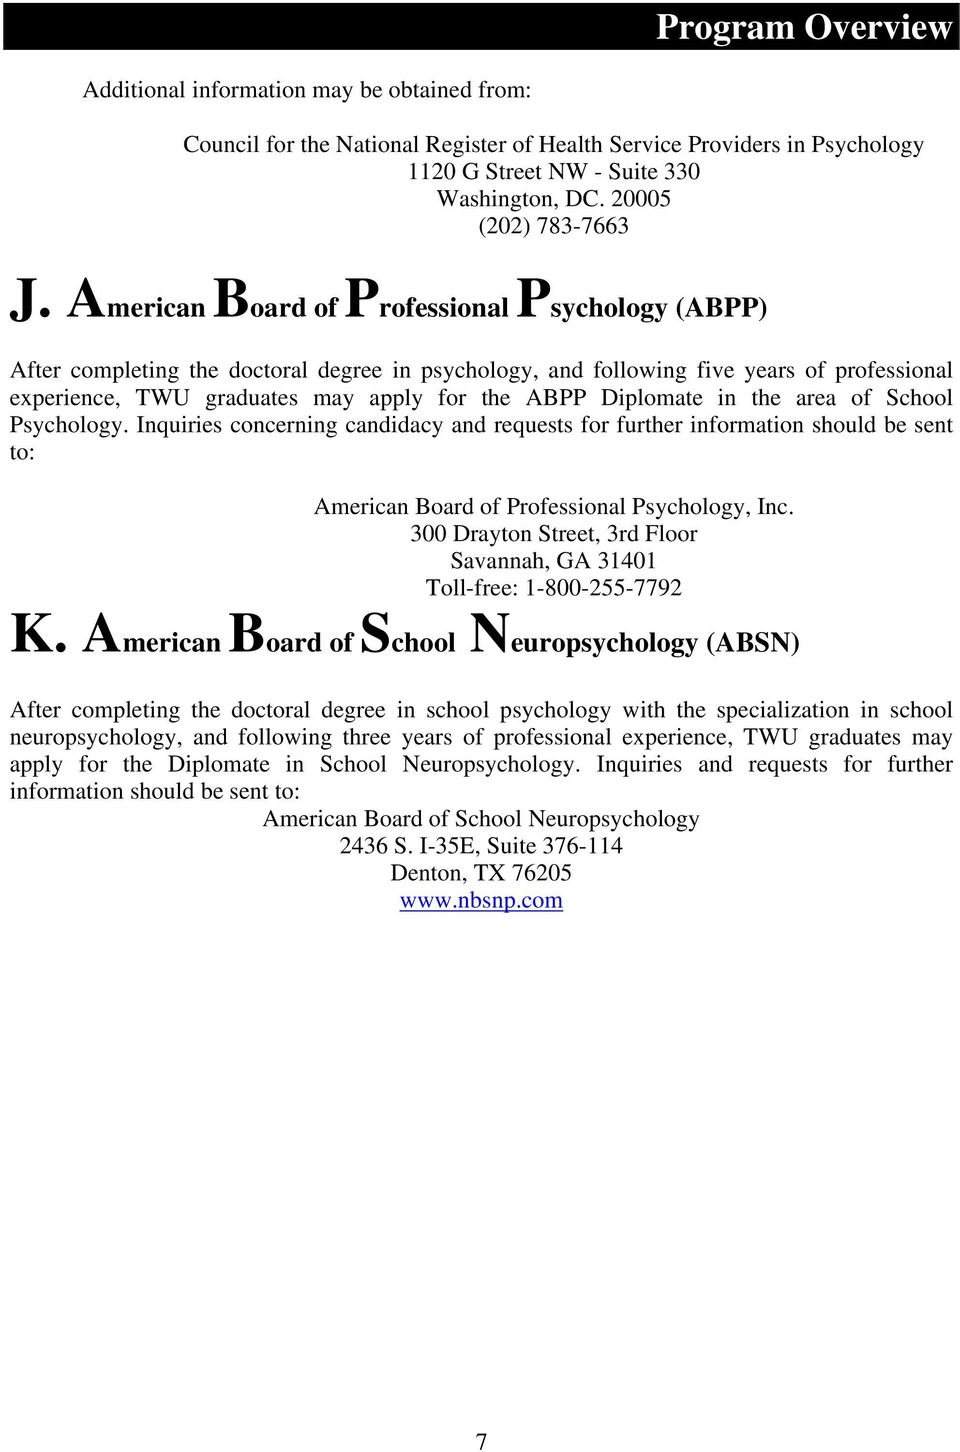 American Board of Professional Psychology (ABPP) After completing the doctoral degree in psychology, and following five years of professional experience, TWU graduates may apply for the ABPP